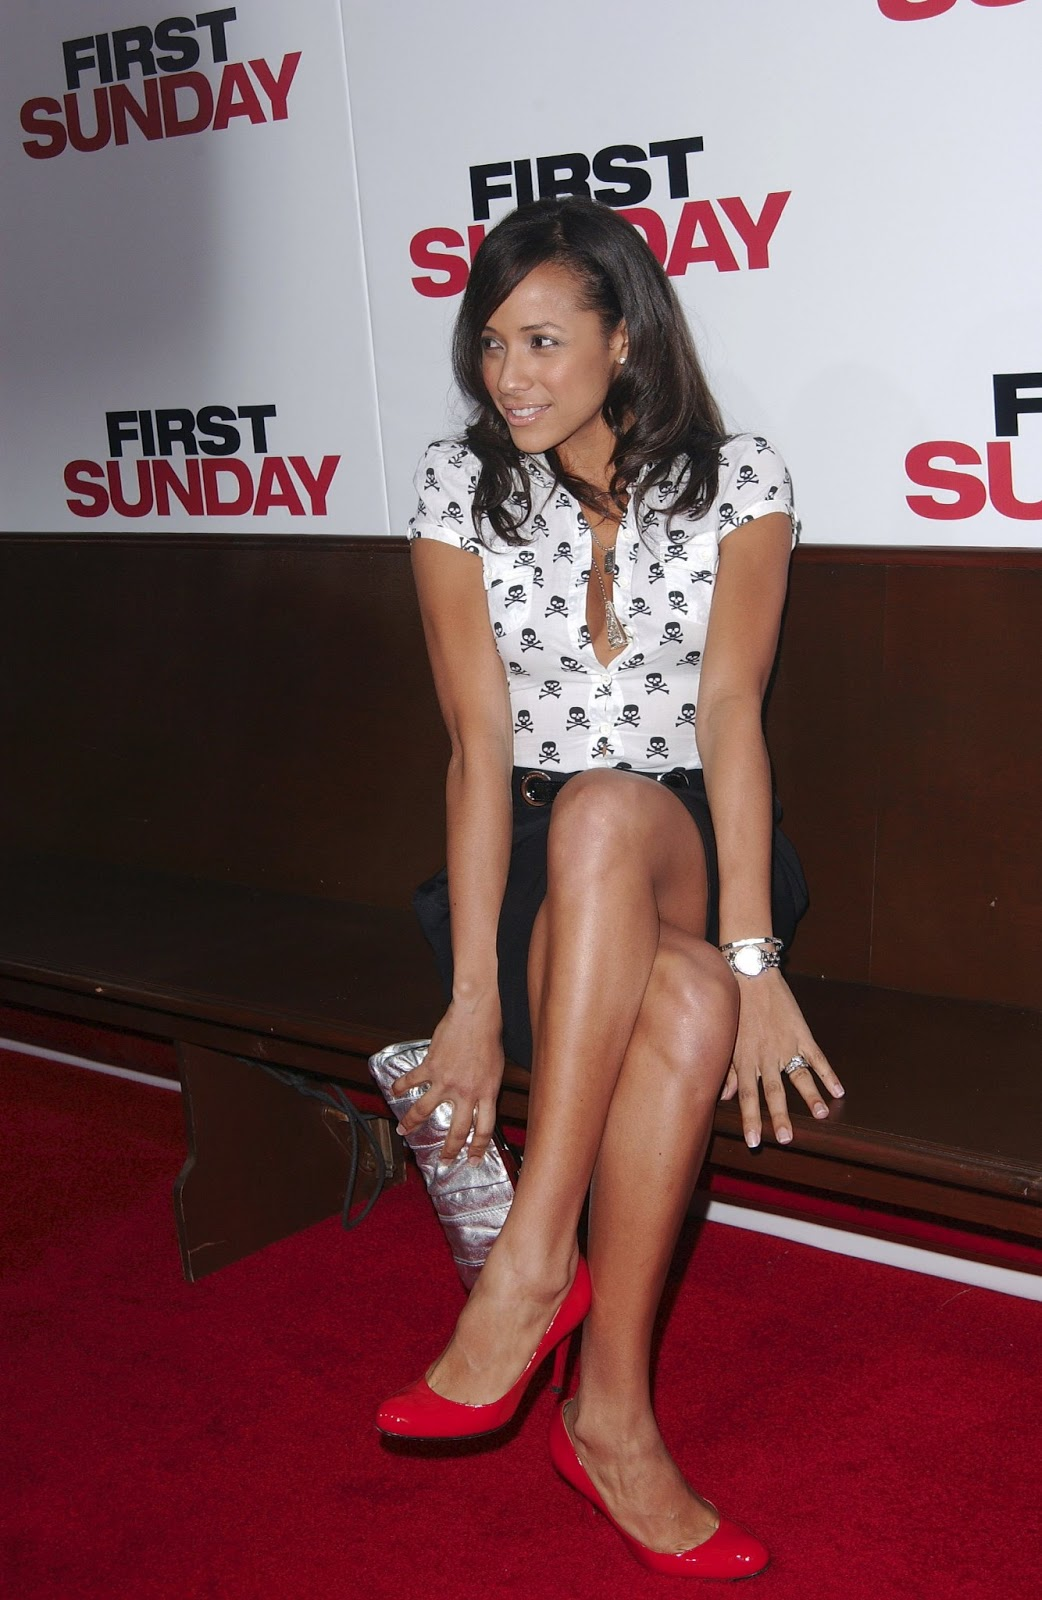 Dania Ramirez hot hd wallpapers | HIGH RESOLUTION PICTURES